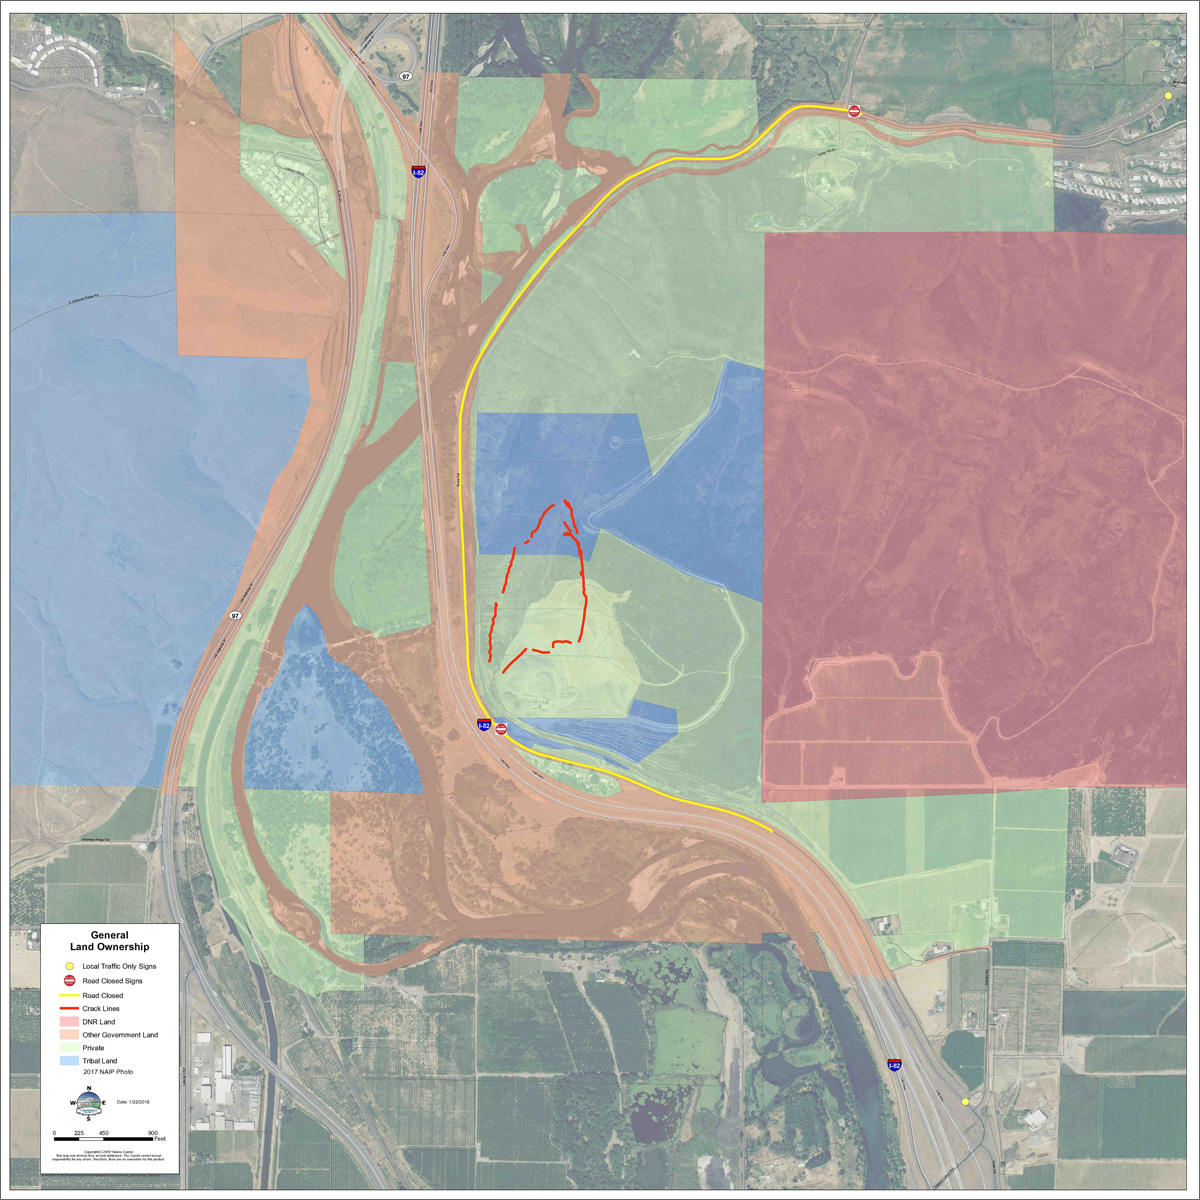 Click to expand. This map shows land ownership around Rattlesnake Ridge. The blue patches indicate tribal-owned land. CREDIT YAKIMA COUNTY OFFICE OF EMERGENCY MANAGEMENT